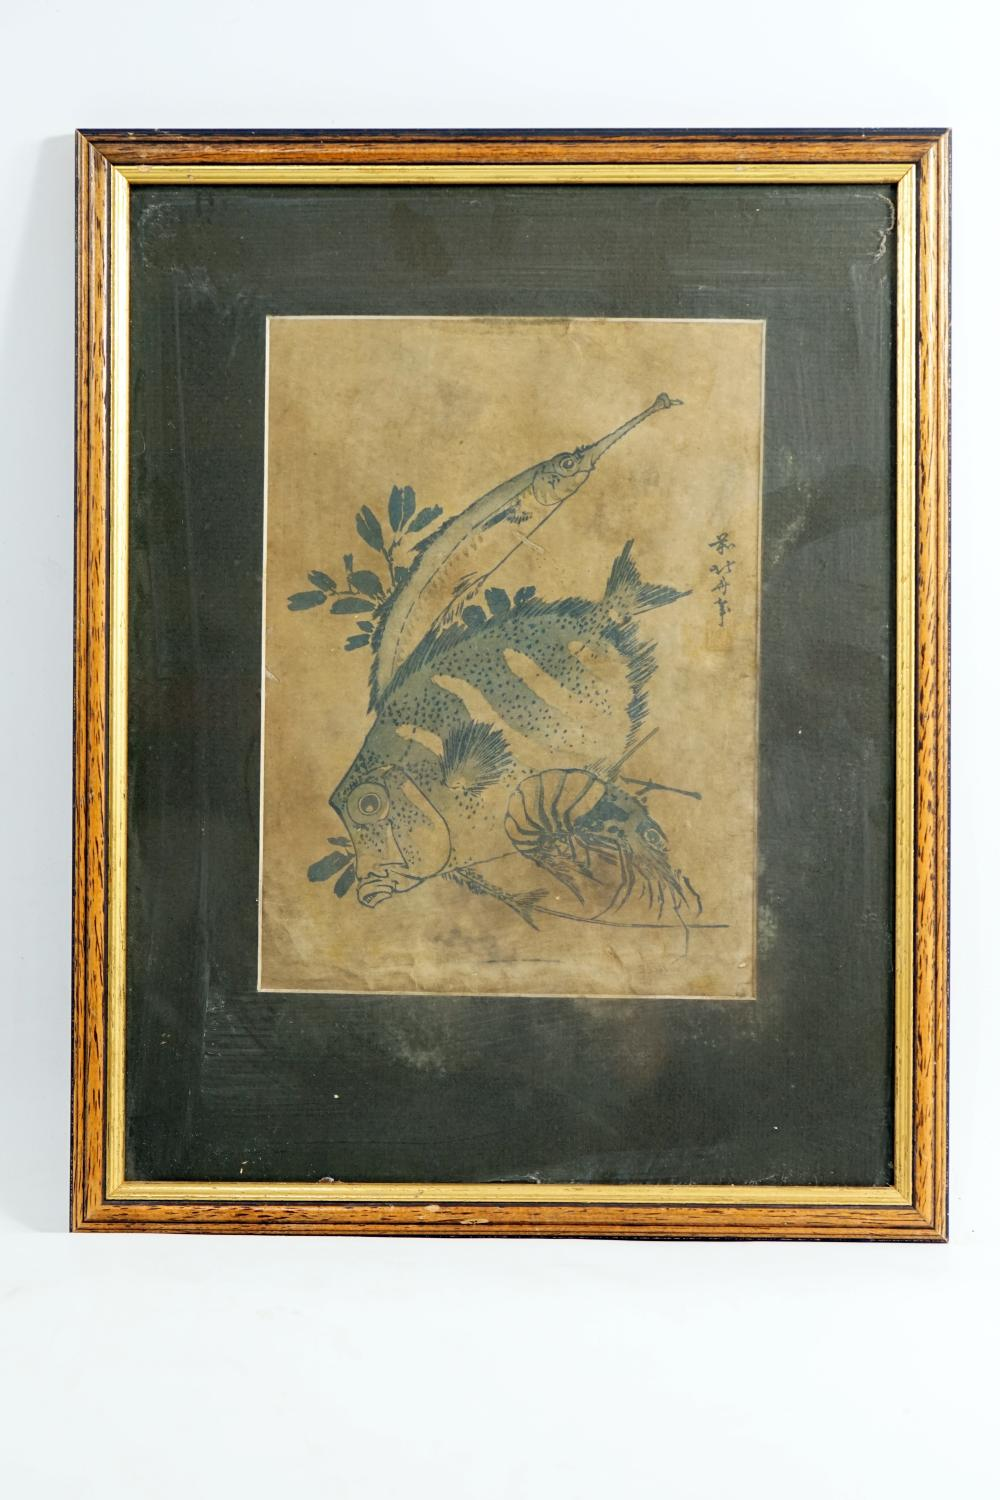 Japanese woodcut, (Akio-ah) Painting of fish signed by the artist Size 17.5 * 24 cm